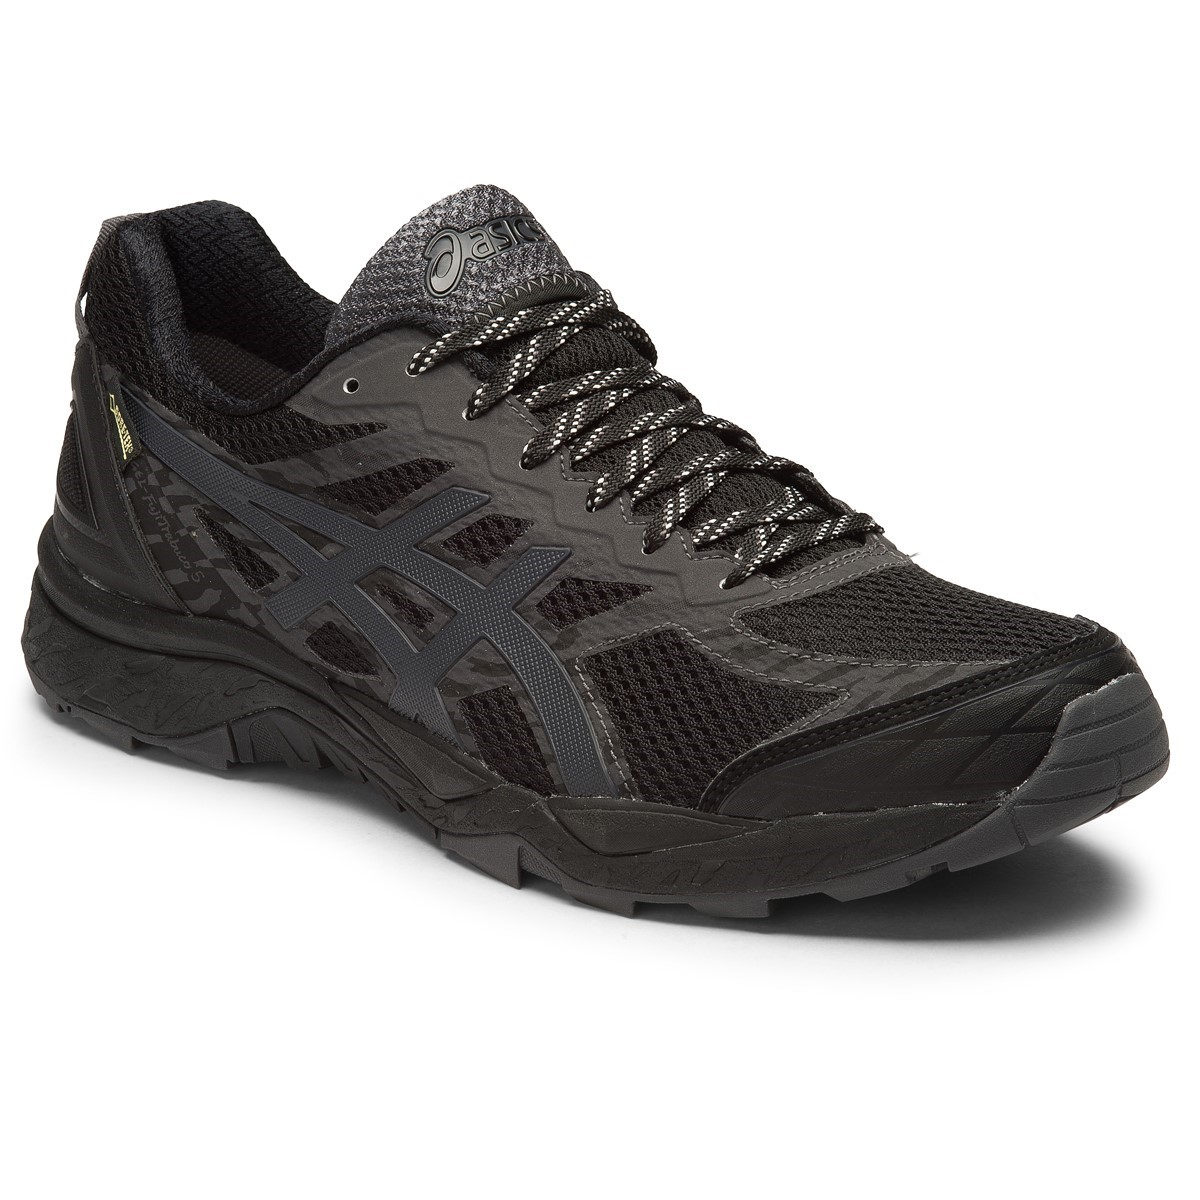 asics gel fuji trabuco 5 gtx mens trail running shoes. Black Bedroom Furniture Sets. Home Design Ideas